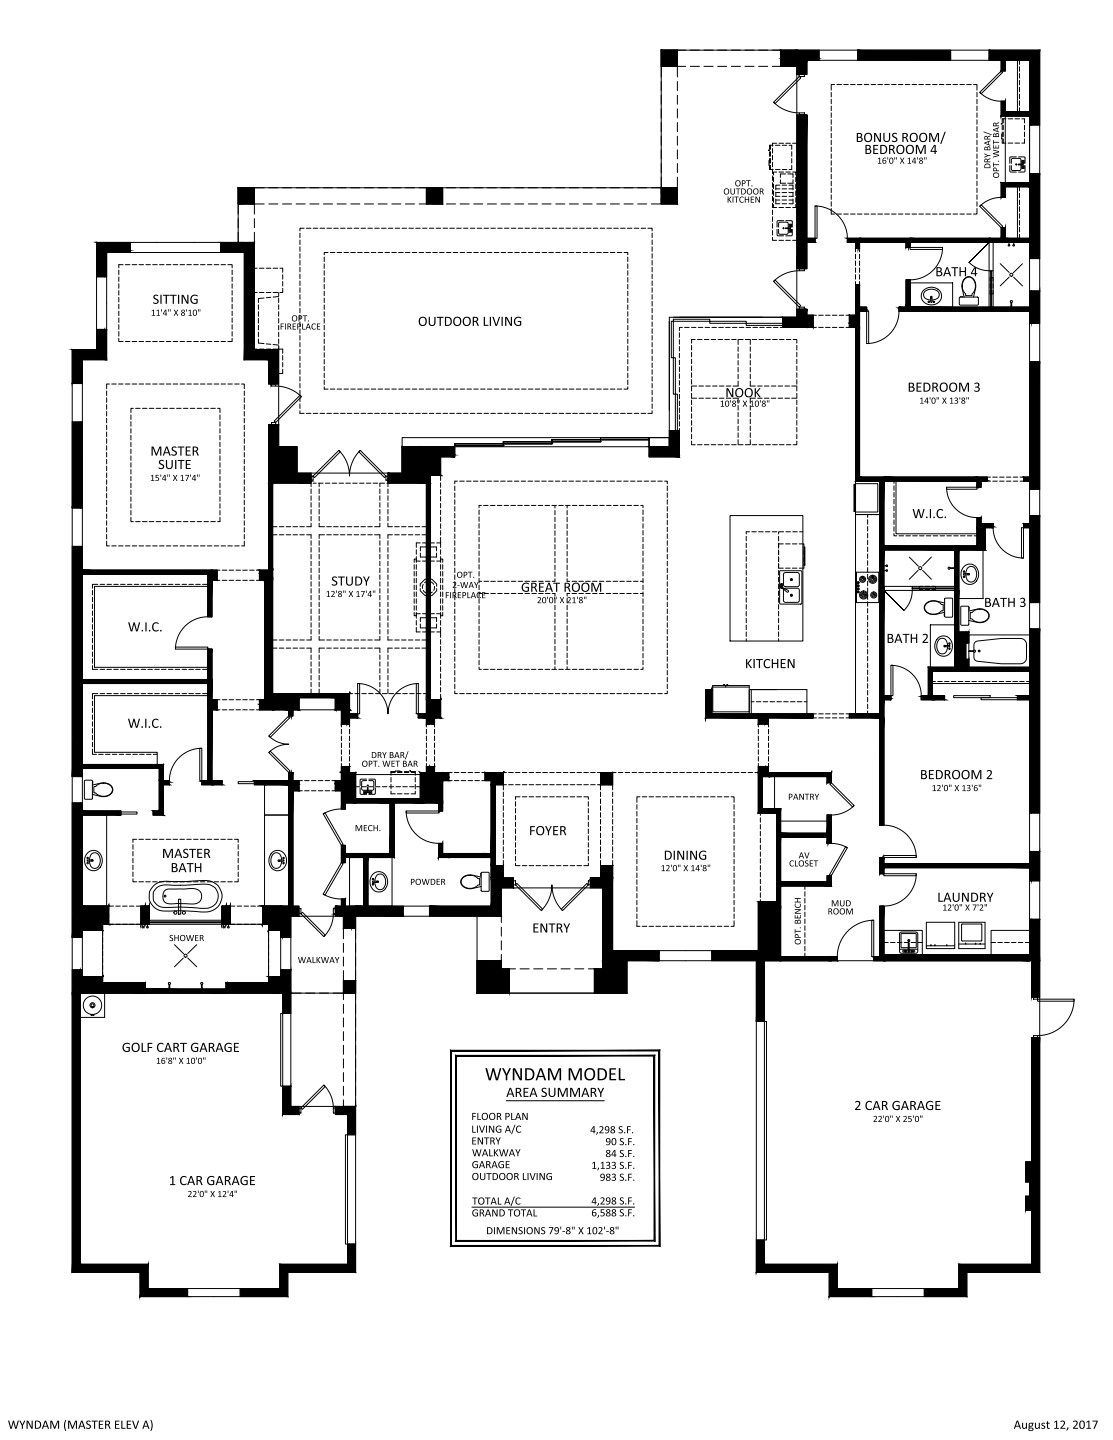 Wyndam Floorplan